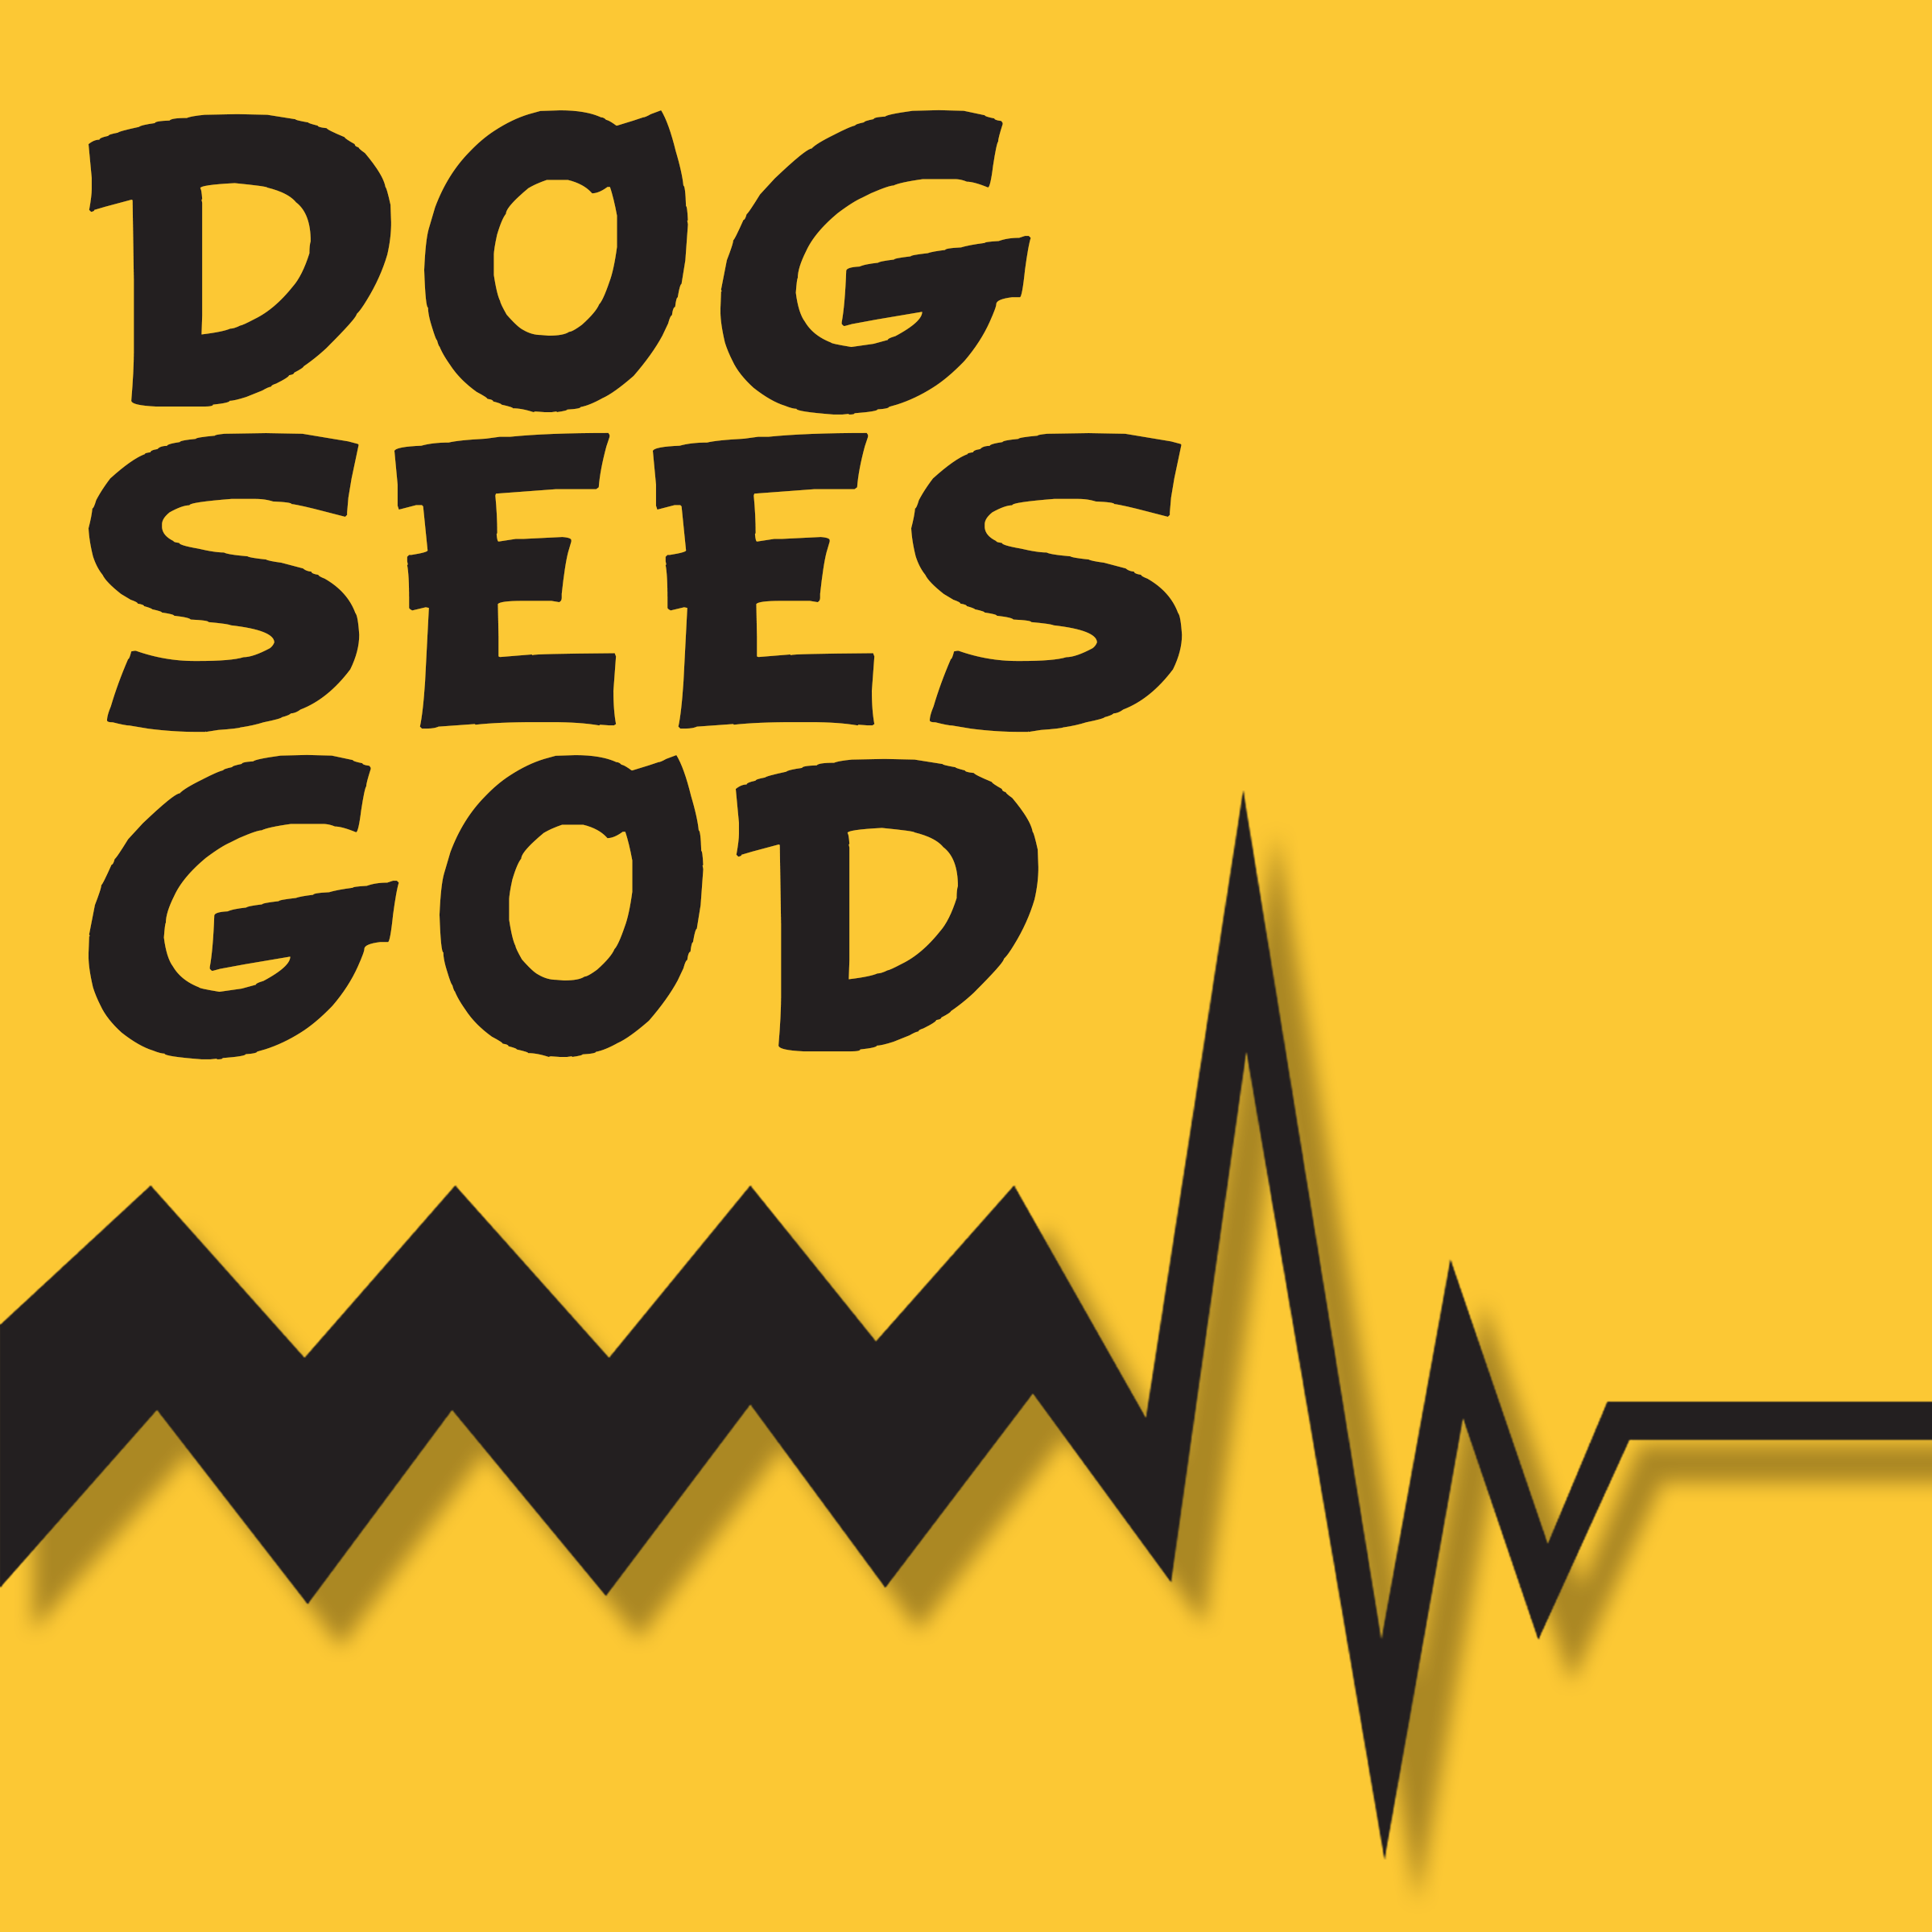 "Jan 11-Jan 27 - DOG SEES GOD: CONFESSIONS OF A TEENAGE BLOCKHEADWichita Premiere! A reimagining of the popular characters from the comic strip Peanuts disguised as degenerate teenagers. Good grief! Schulz's characters, as visualized by Bert V. Royal, are crass, full of guilty pleasures, their lives on the fringe, their language and behavior unfiltered. Not child appropriate, for its strong language and issues examined, the ""Doctor Is In"" during January. RATED R"